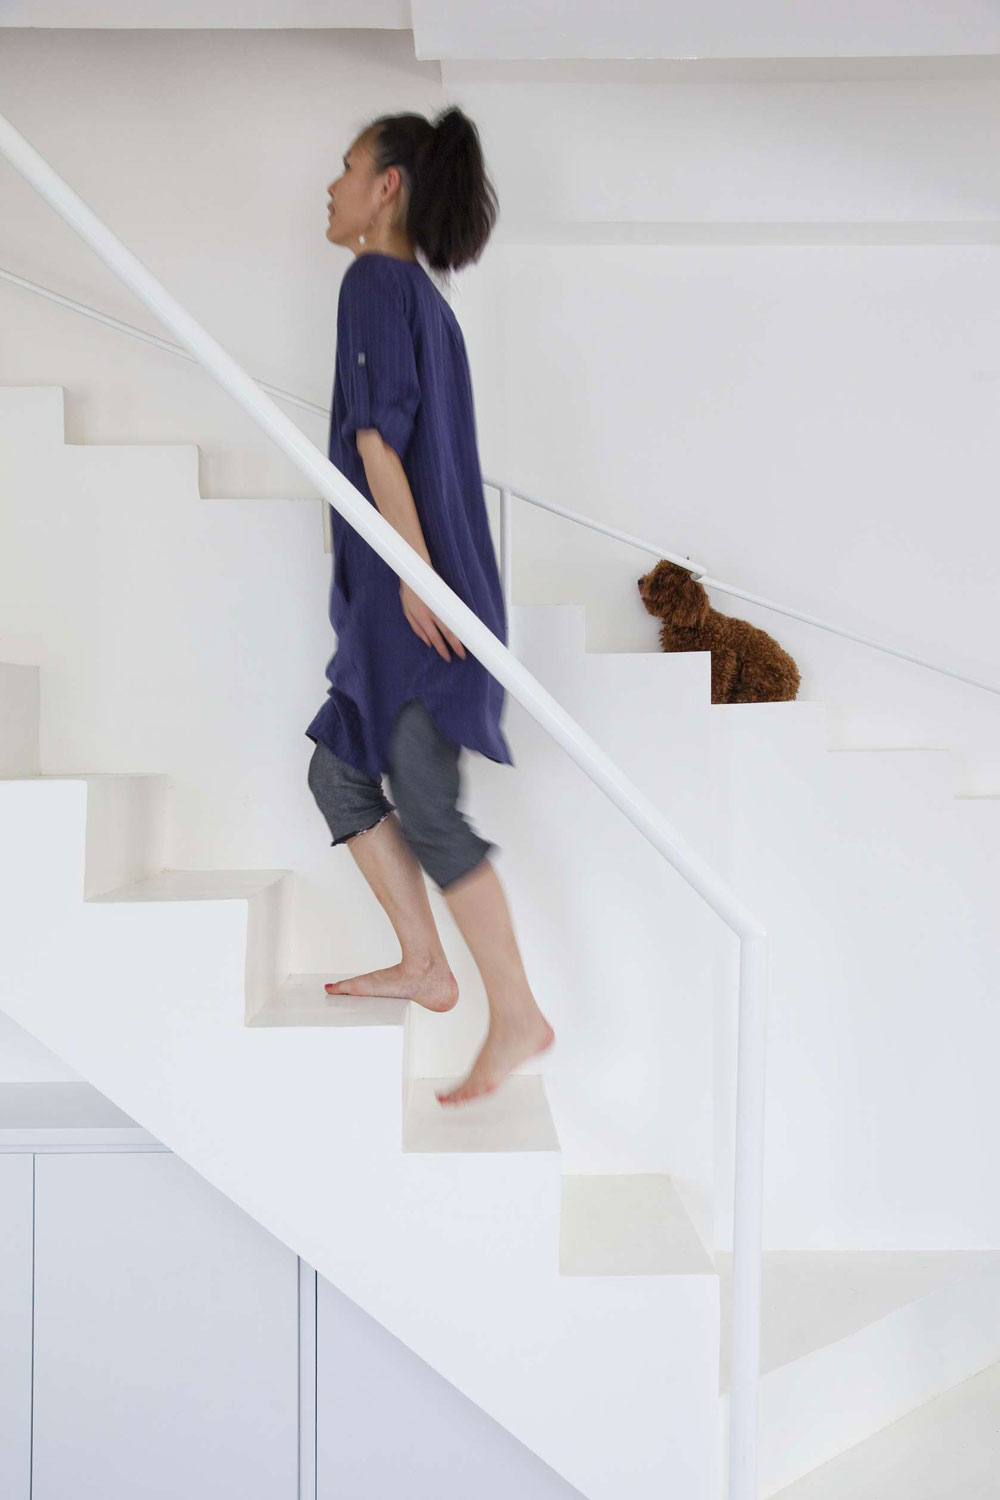 House Renovation with stairs for dogs in Vietnam by 07Beach | Yellowtrace